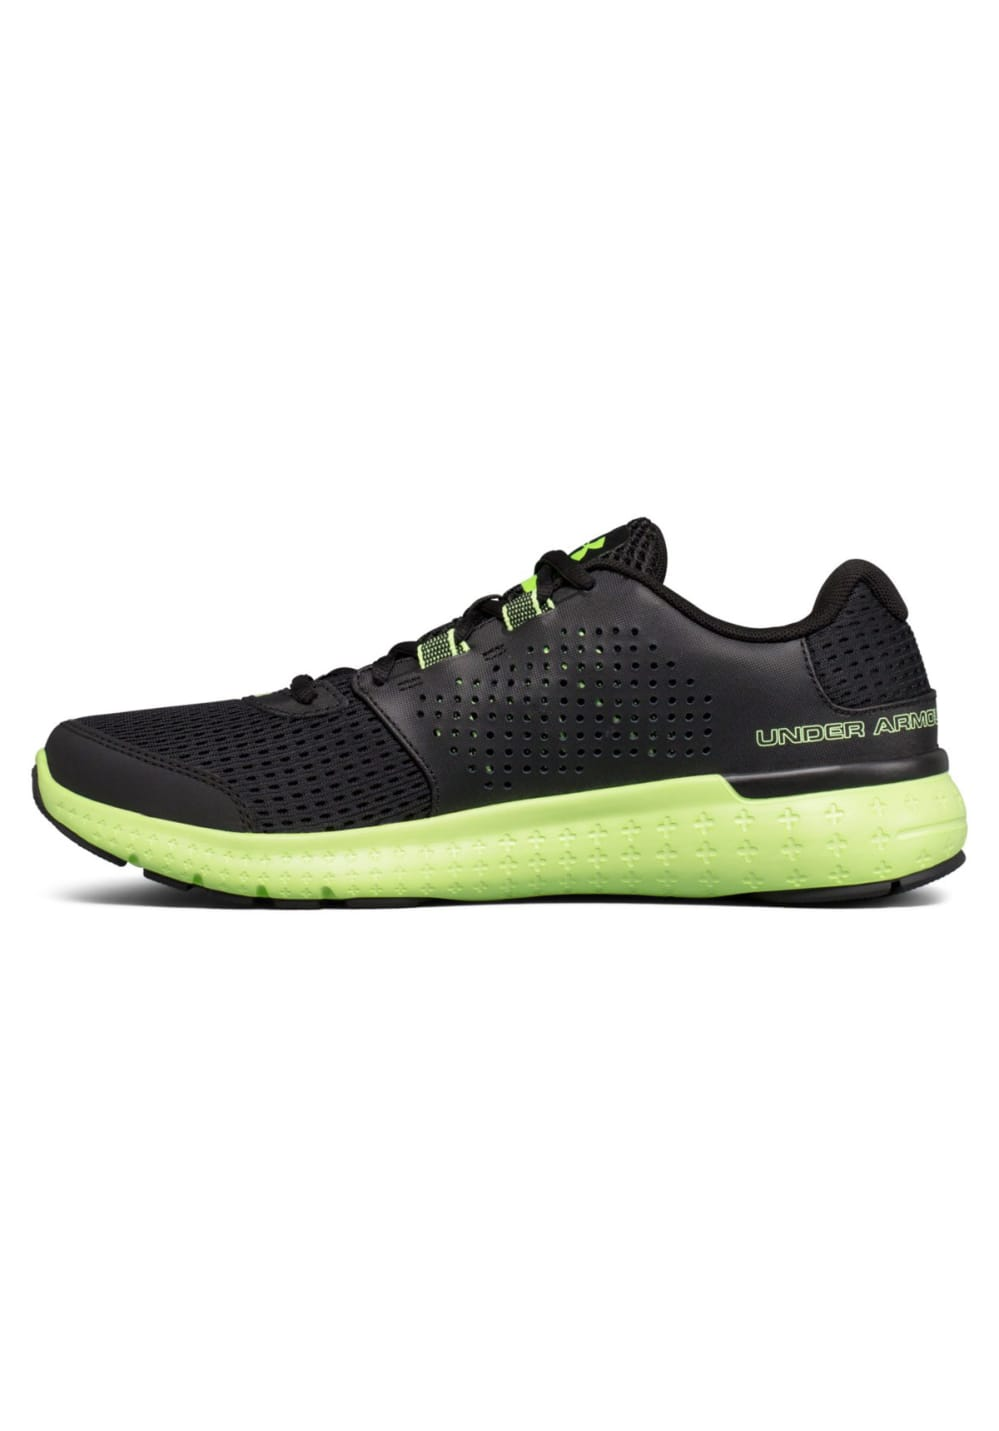 quality design ef40f ac6b4 Under Armour Micro G Fuel Run - Running shoes for Men - Black